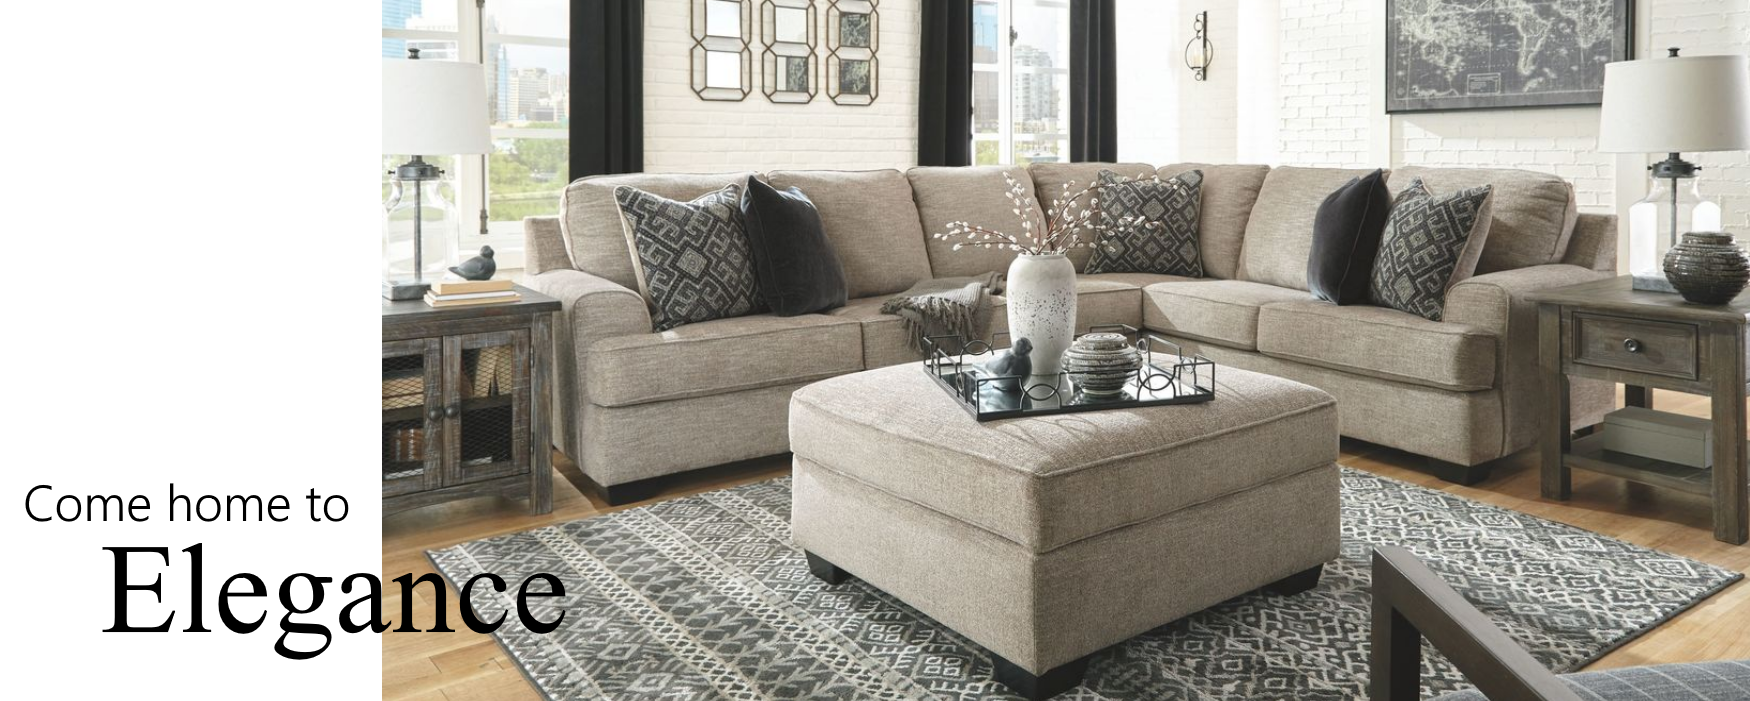 The Best Furniture And Mattress Store In Tri County West Chester And Winton Woods In Cincinnati Oh Bargains And Buyouts